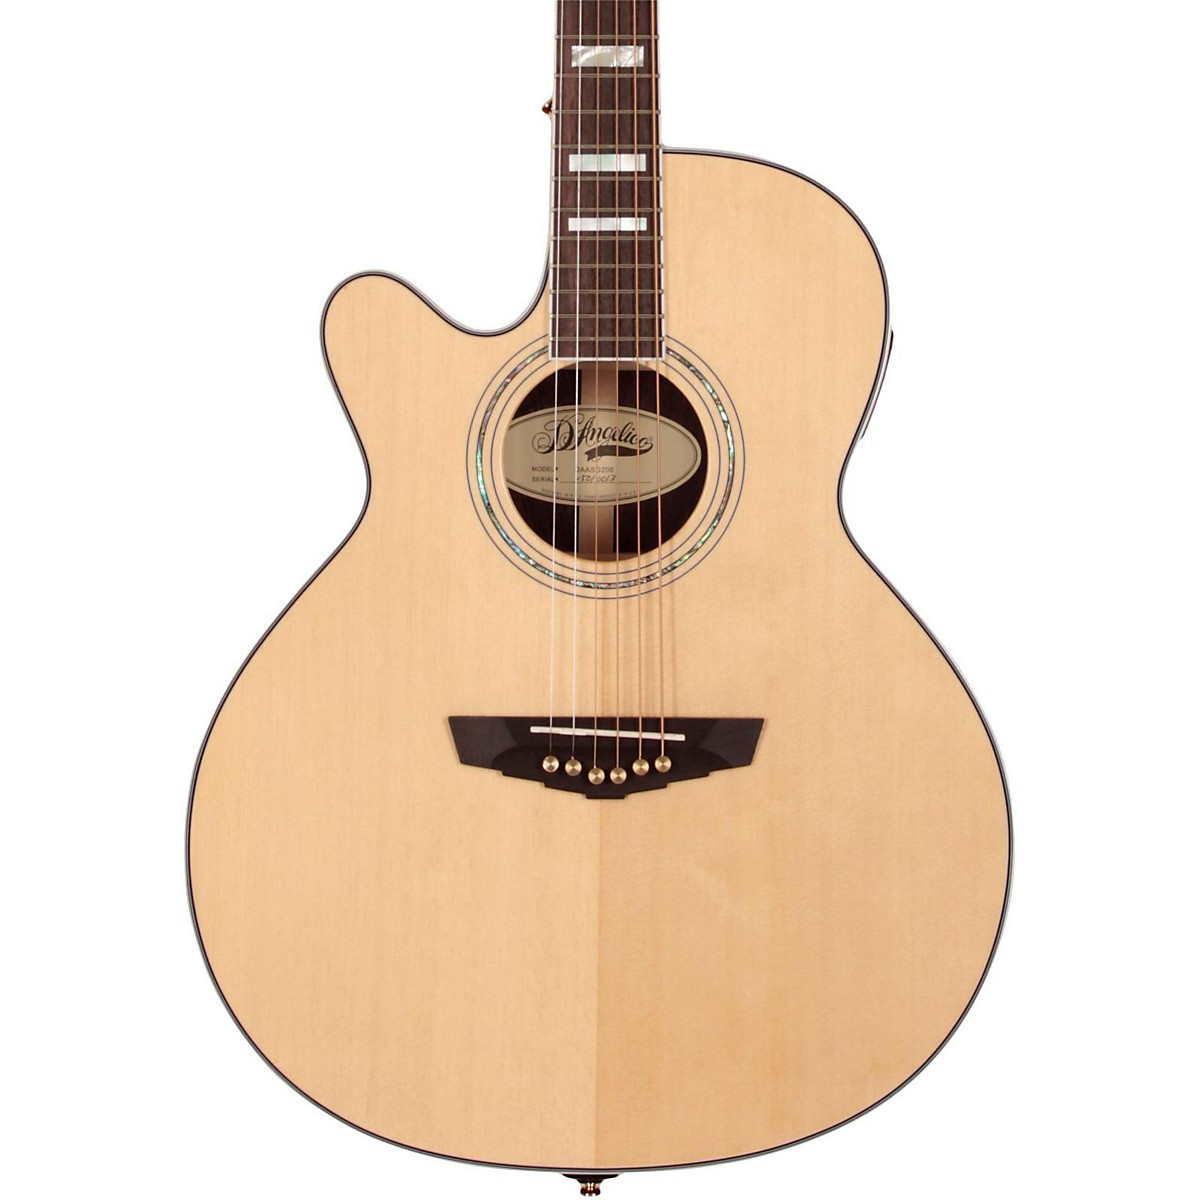 D'Angelico Gramercy Grand Auditorium Left-Handed Cutaway Acoustic-Electric Guitar